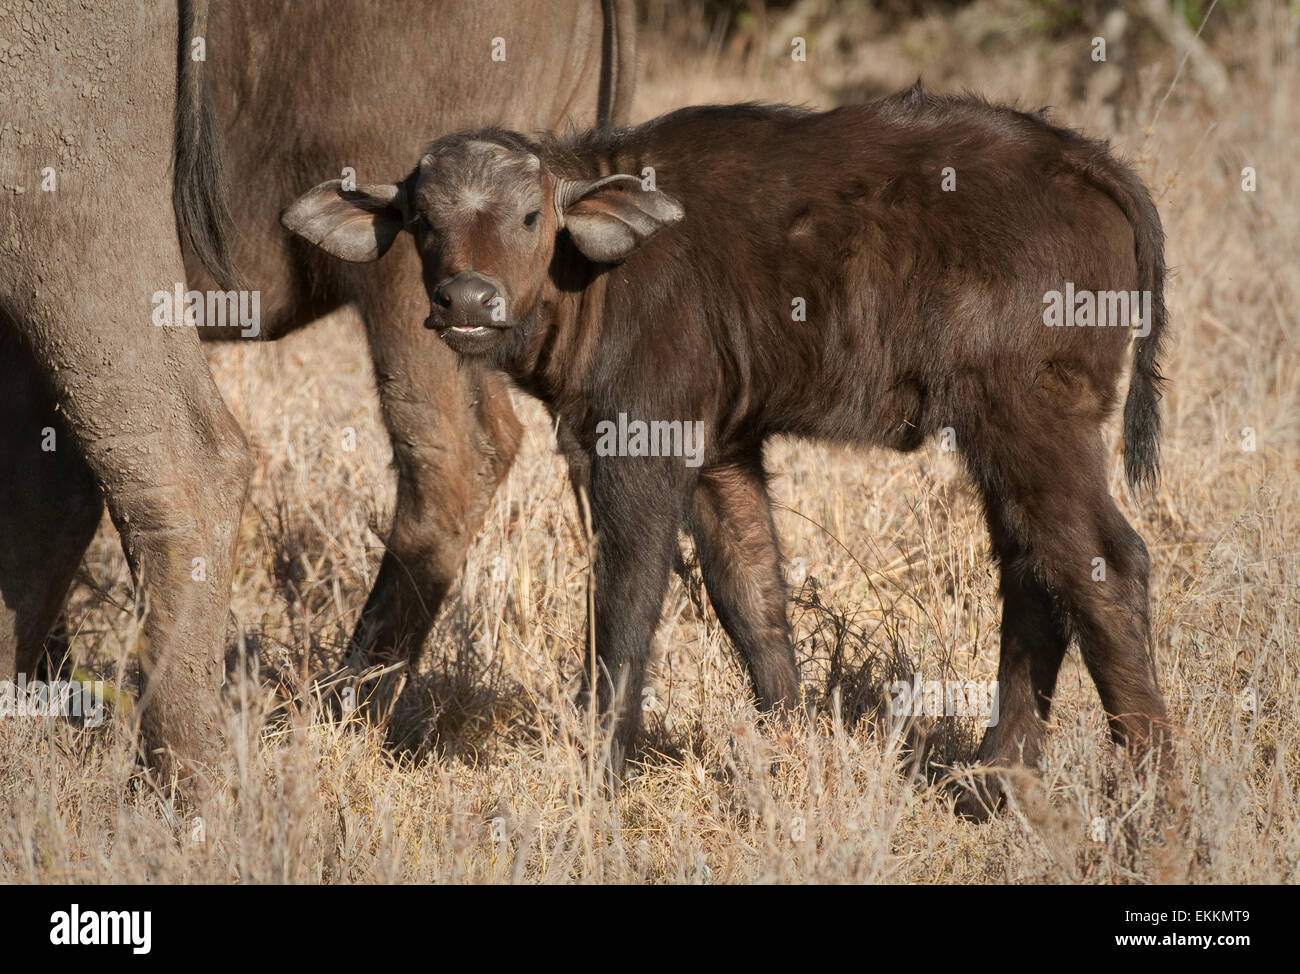 Baby Cape buffalo standing by mother's side - Stock Image